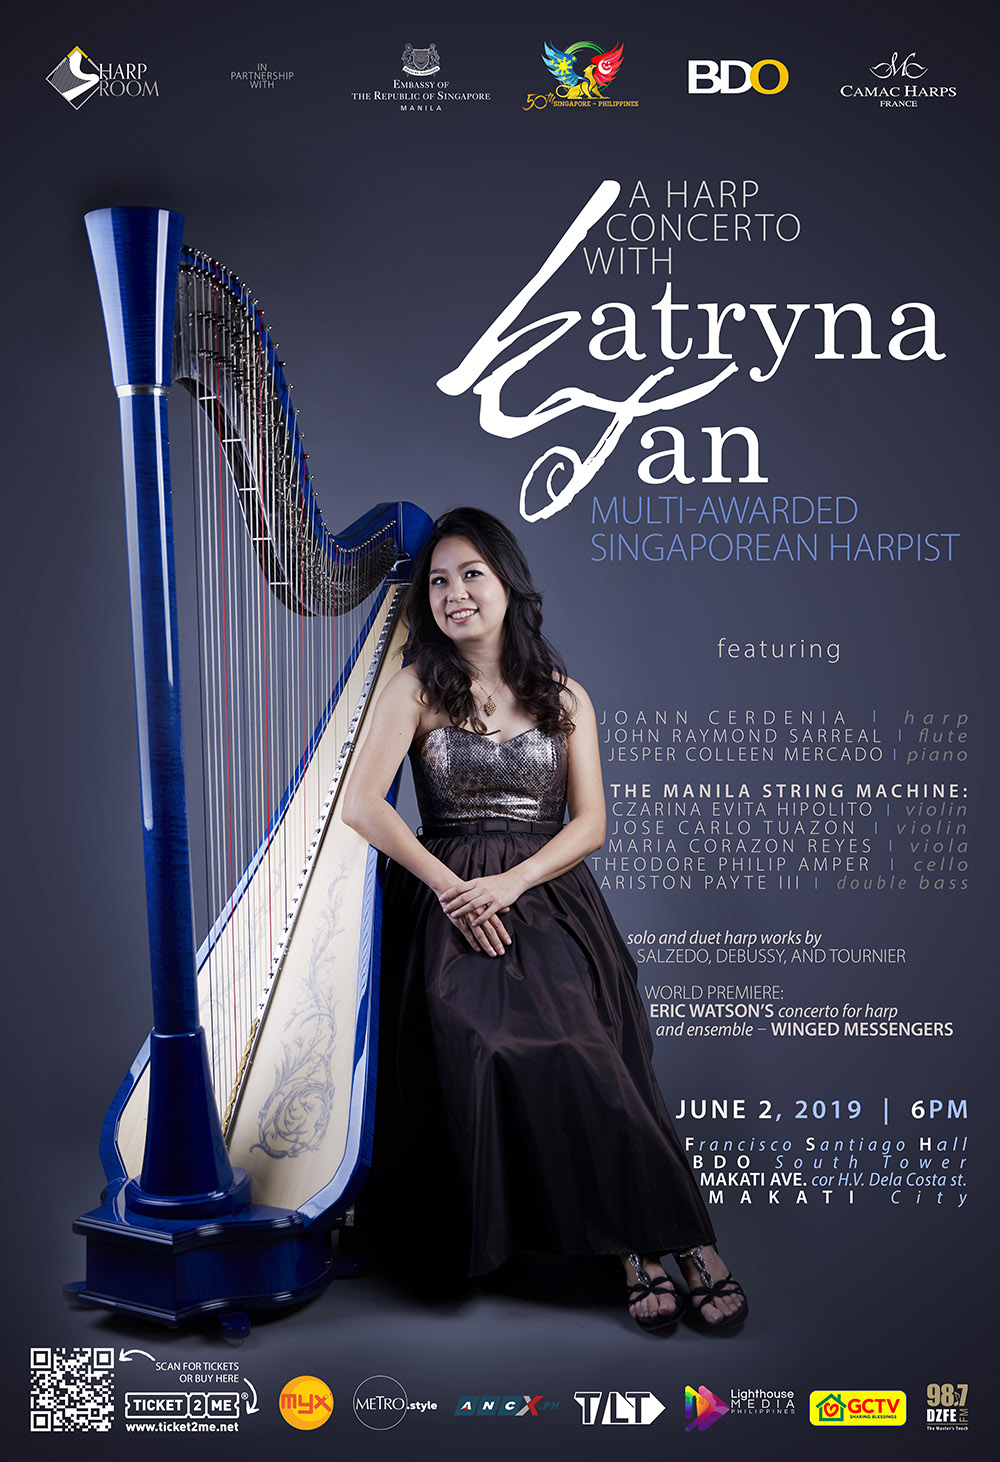 Poster: A harp concerto with Katryna Tan